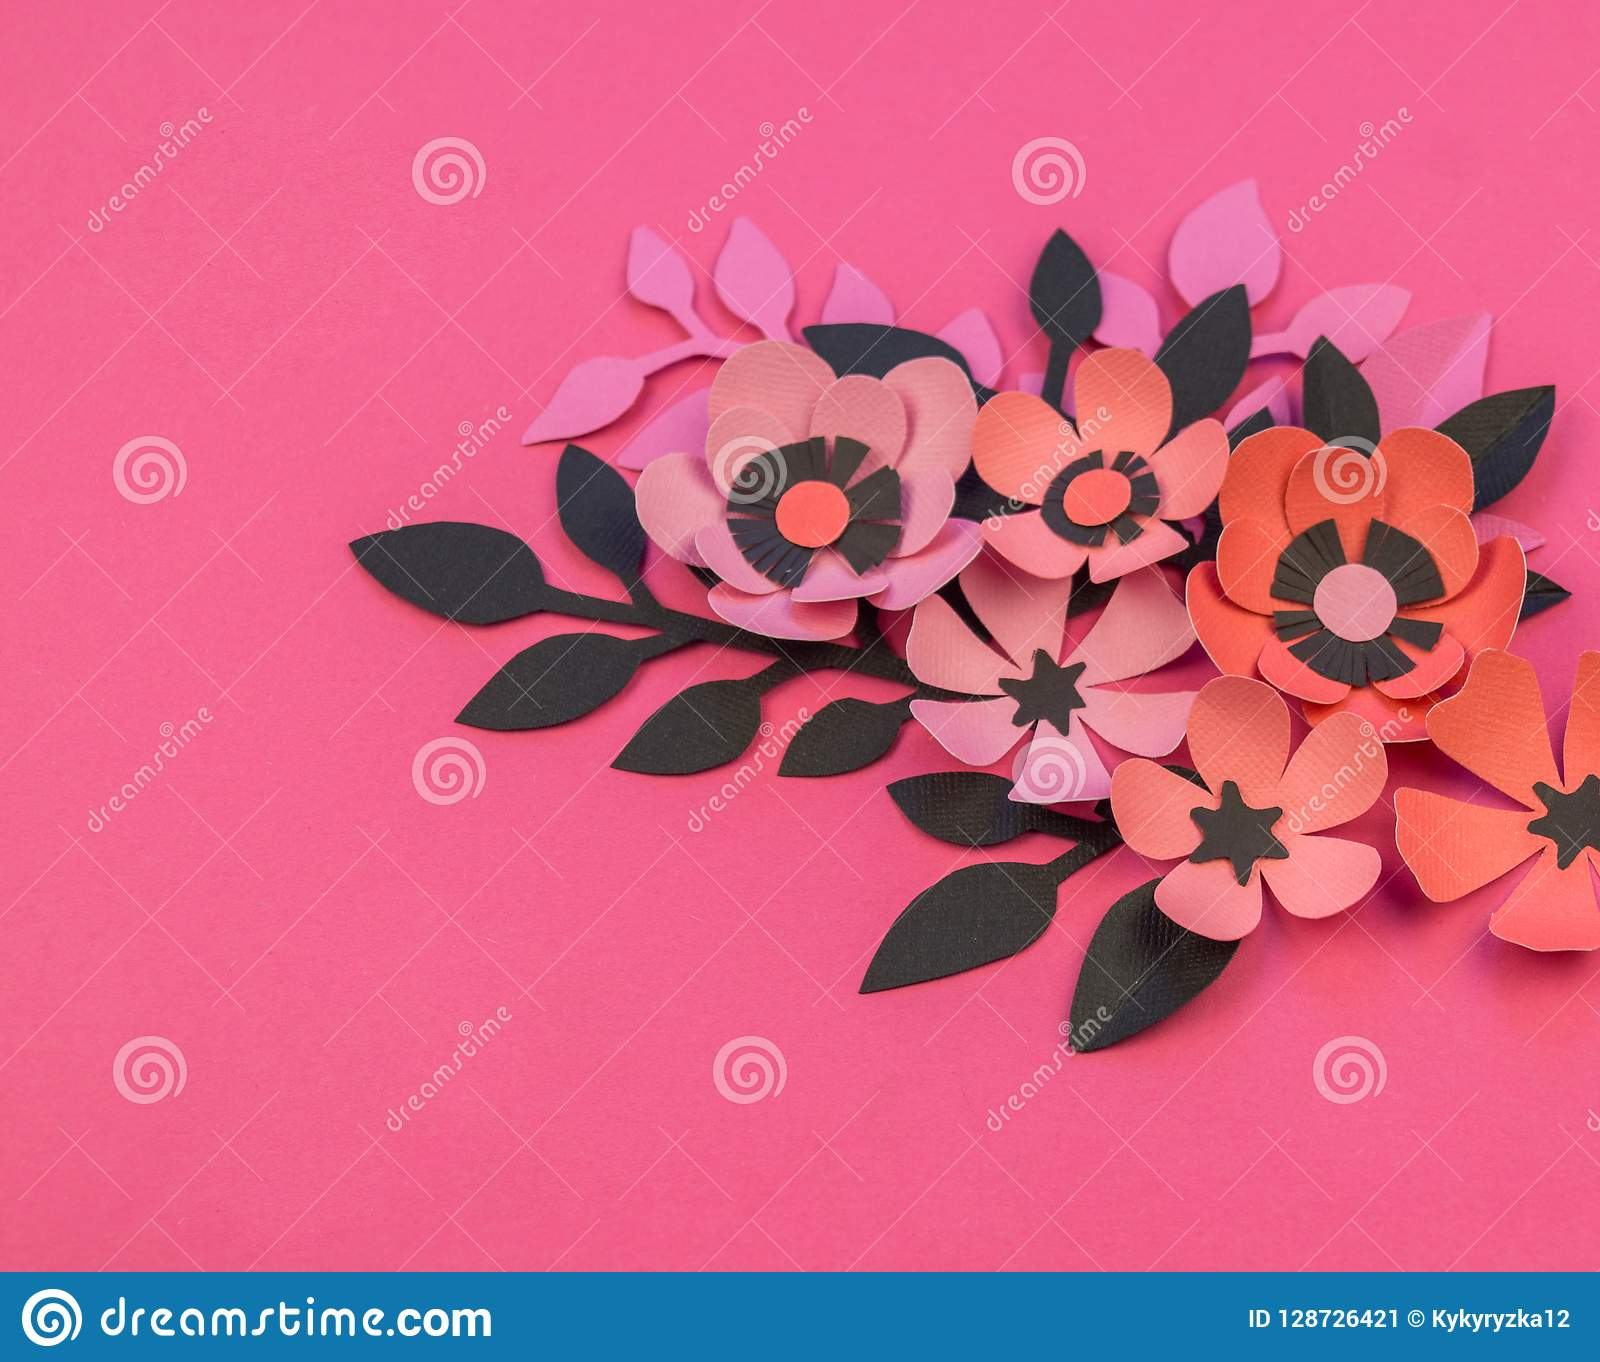 Flower And Leaves Of Paper Pink Background Stock Image Image Of